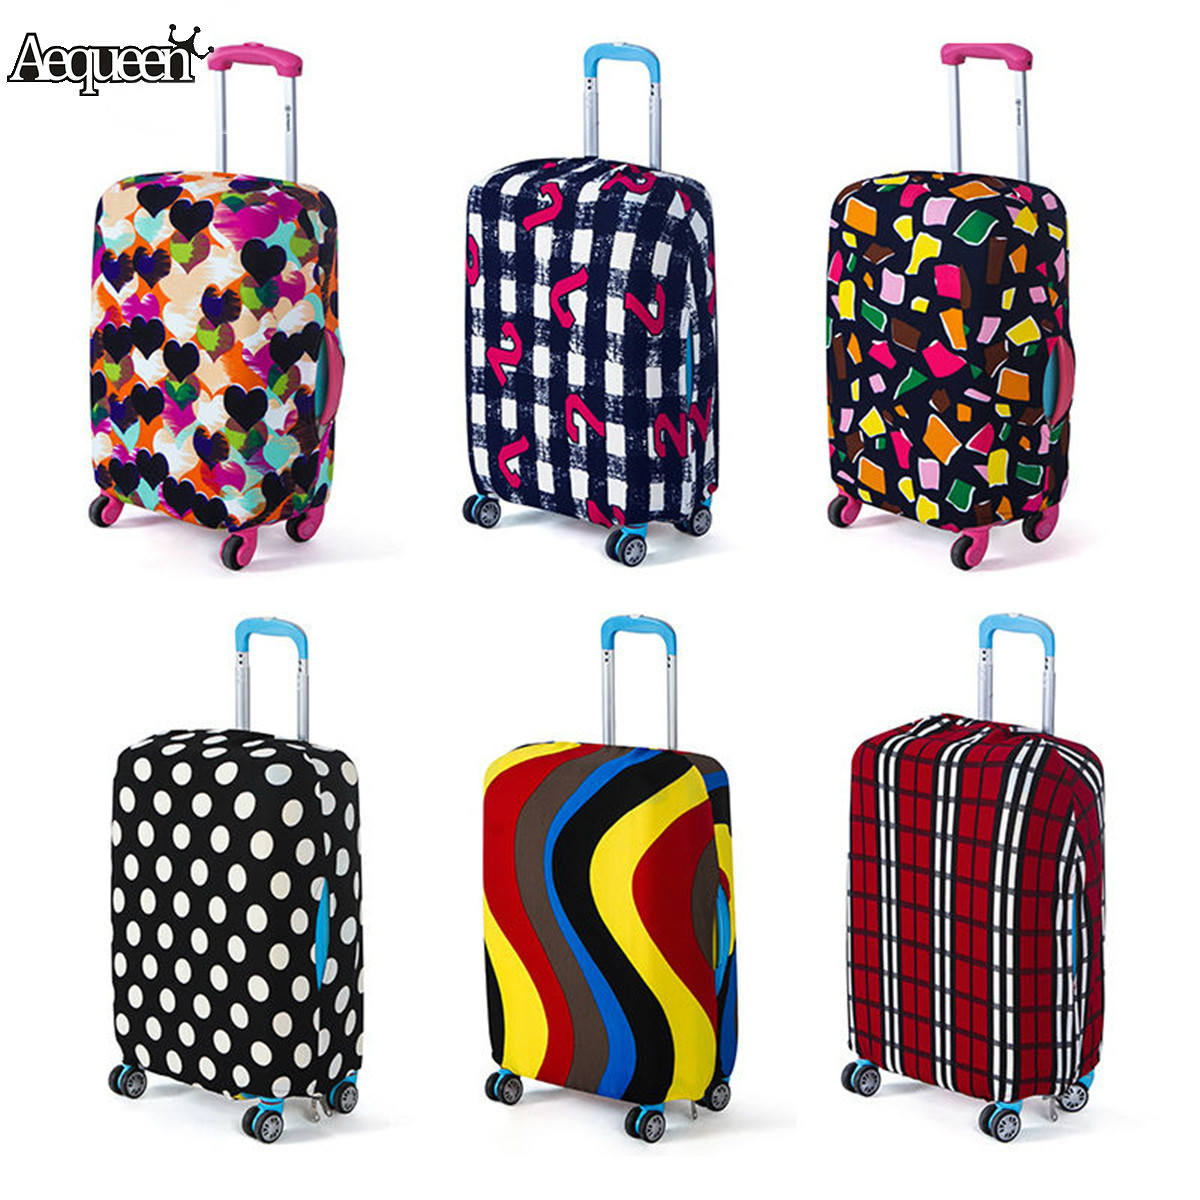 18-20 Elastic Luggage Suitcase Cover Protective Bag Thicker Dustproof Case Protector Travel Accessorie Luggage Cover